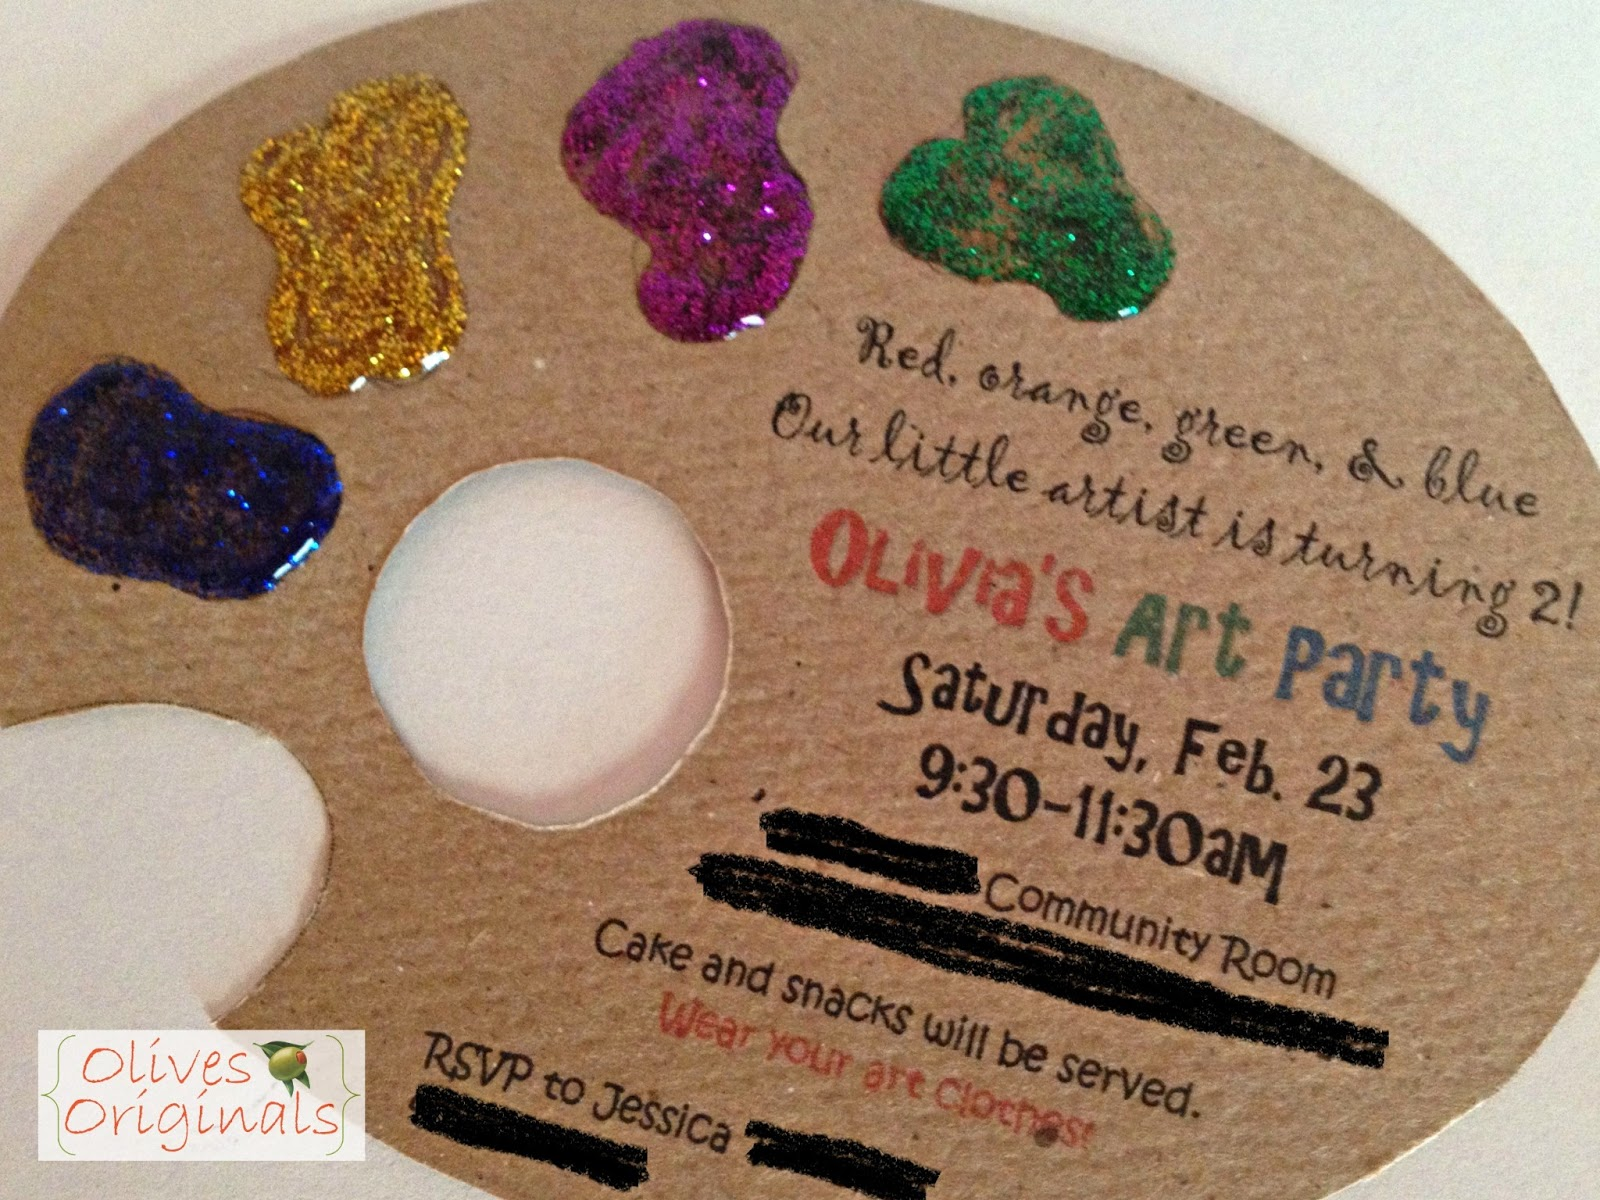 Art Party Invitations The Best Invitation In 2017 – Art Party Invites